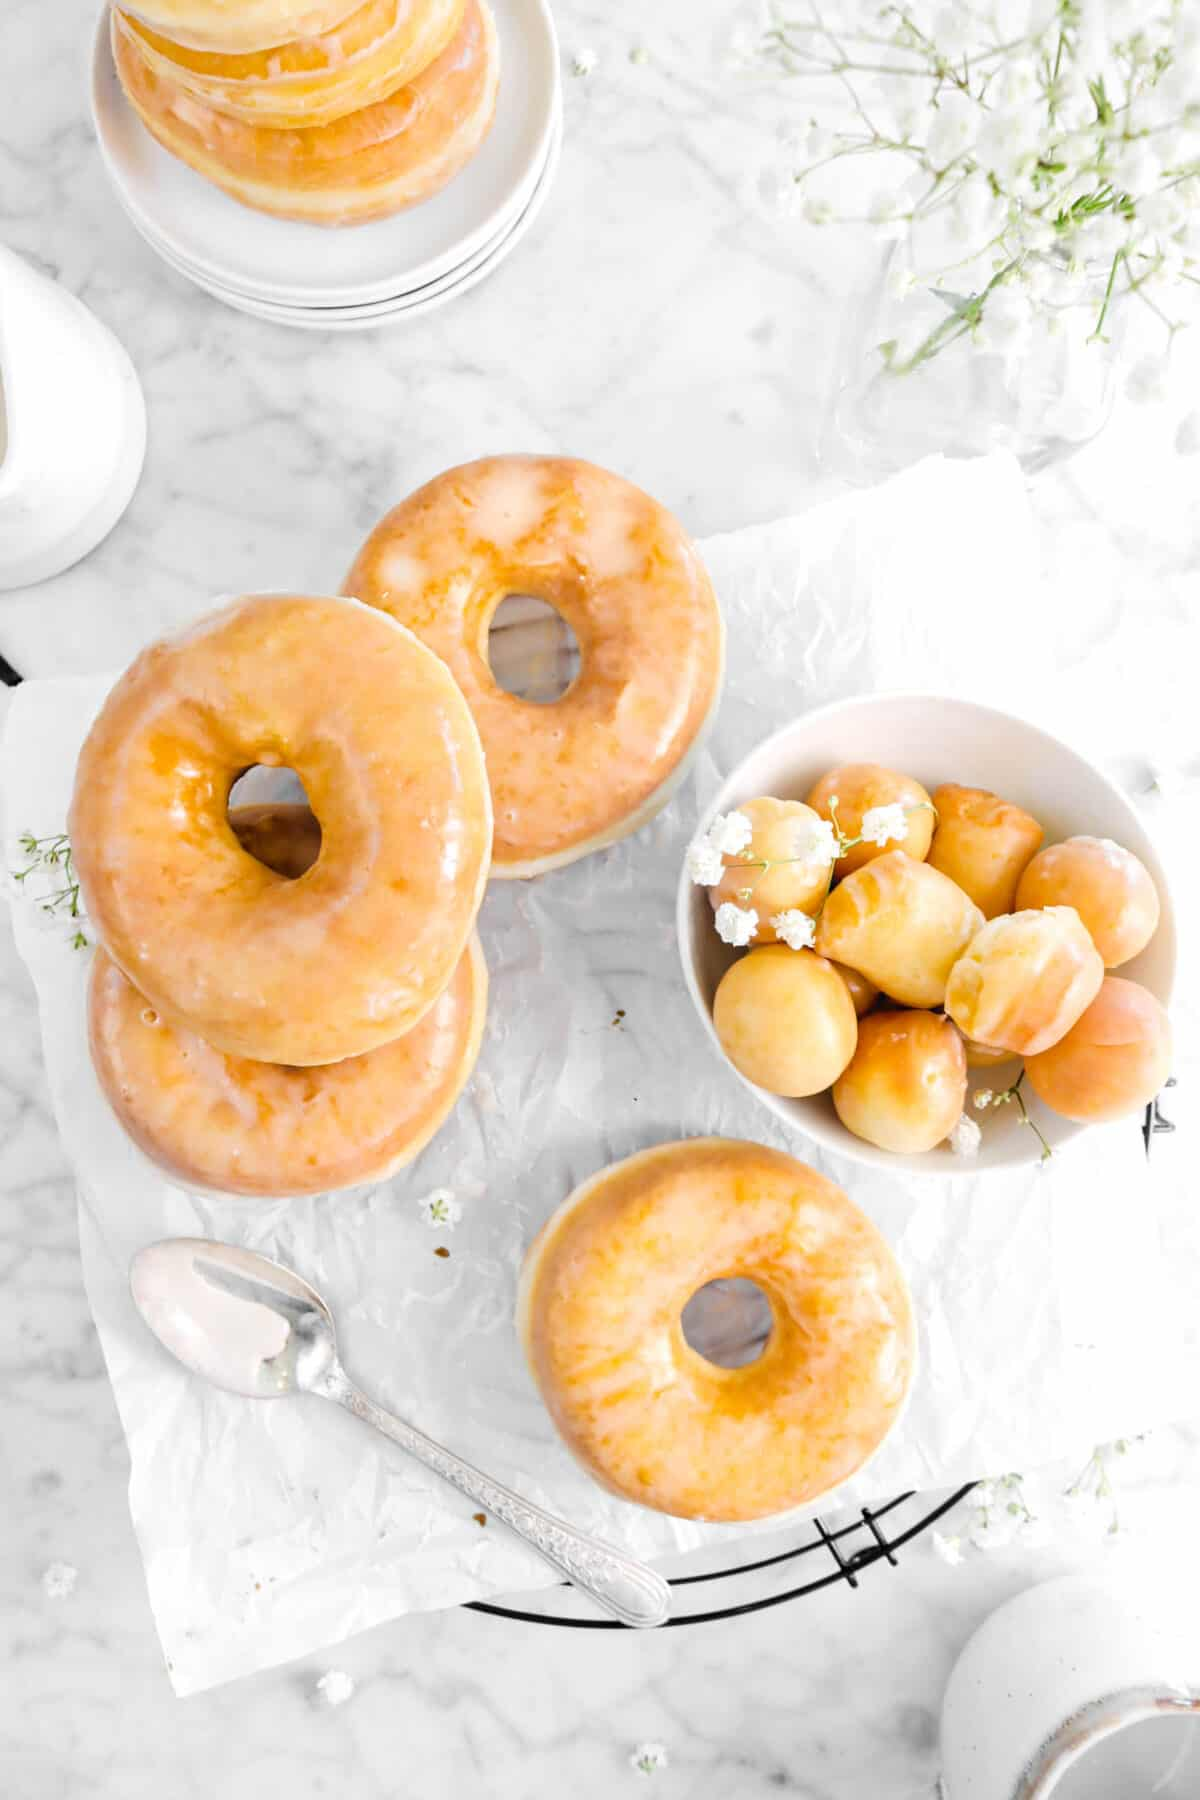 overhead shot of four doughnuts on wire cooling rack with doughnut holes, a spoon, and flowers